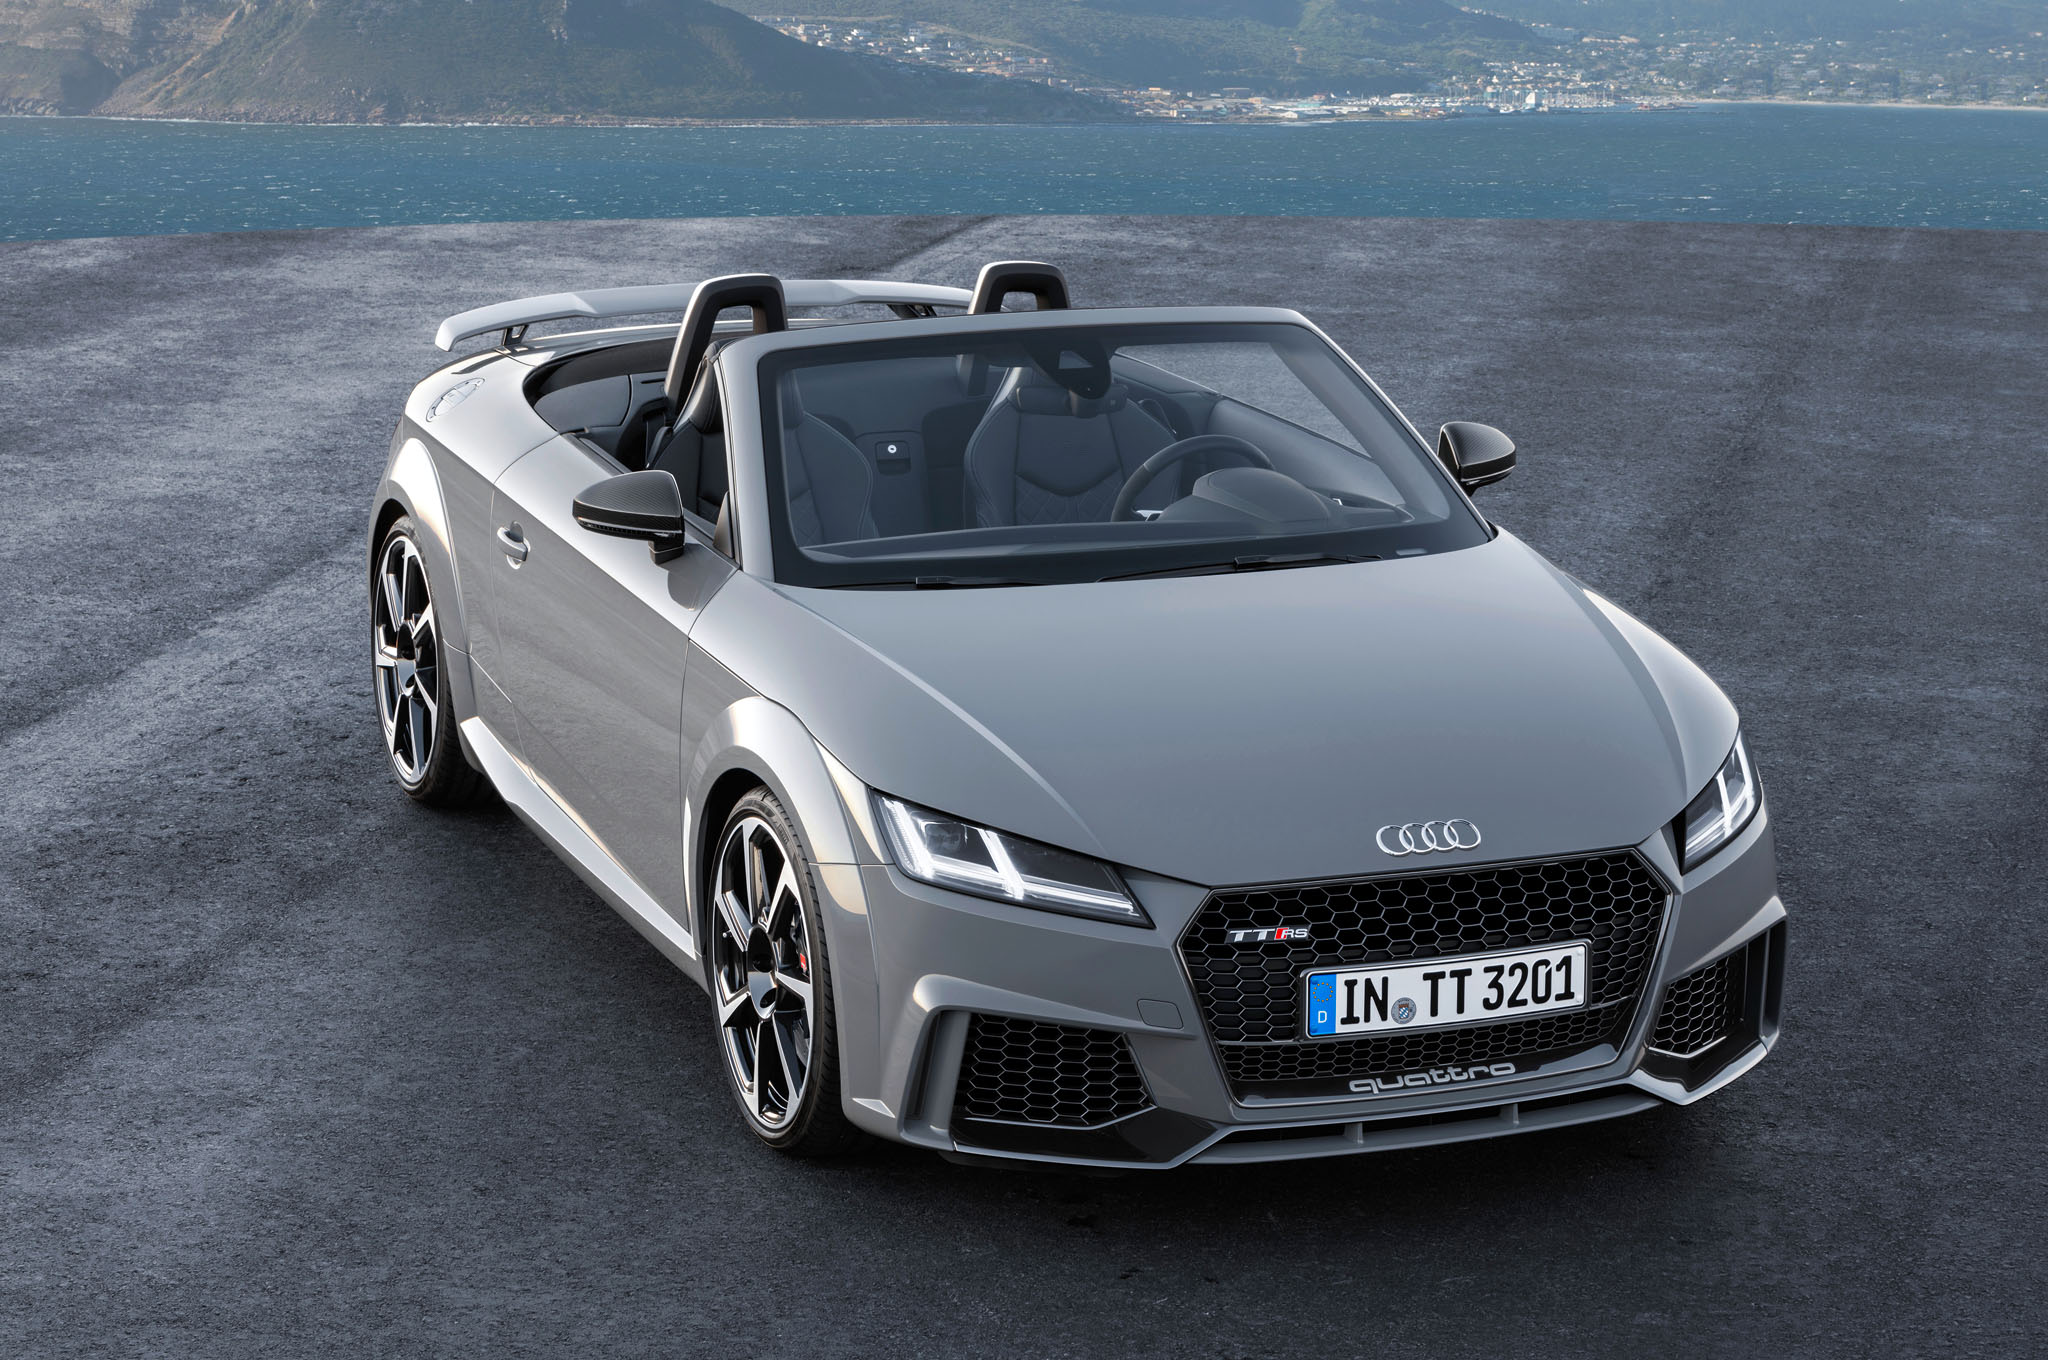 2017 Audi TT RS Convertible Android Wallpaper | HD Car ...